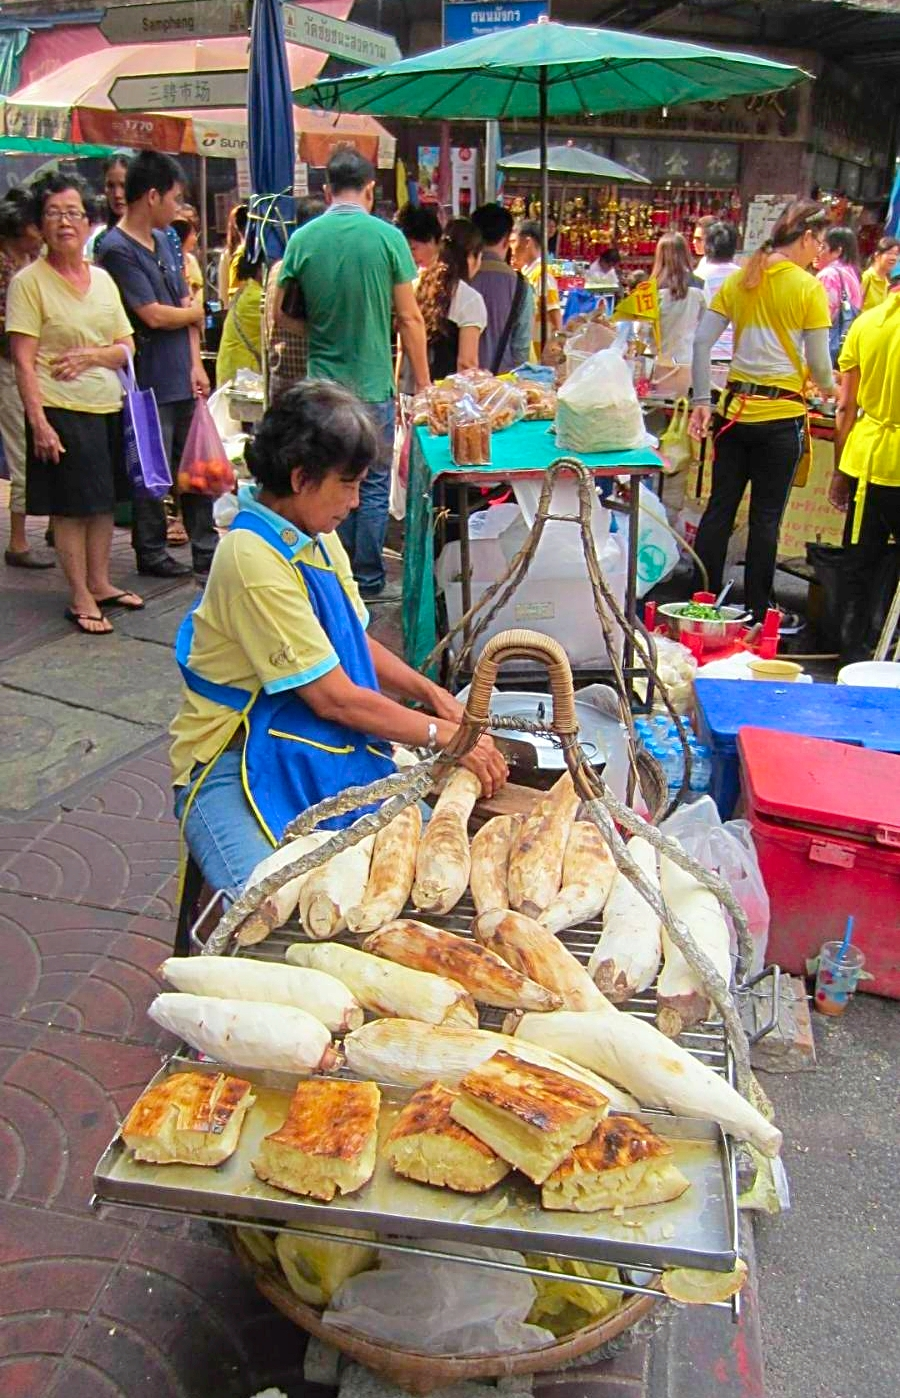 Thailand street vendors sell everything